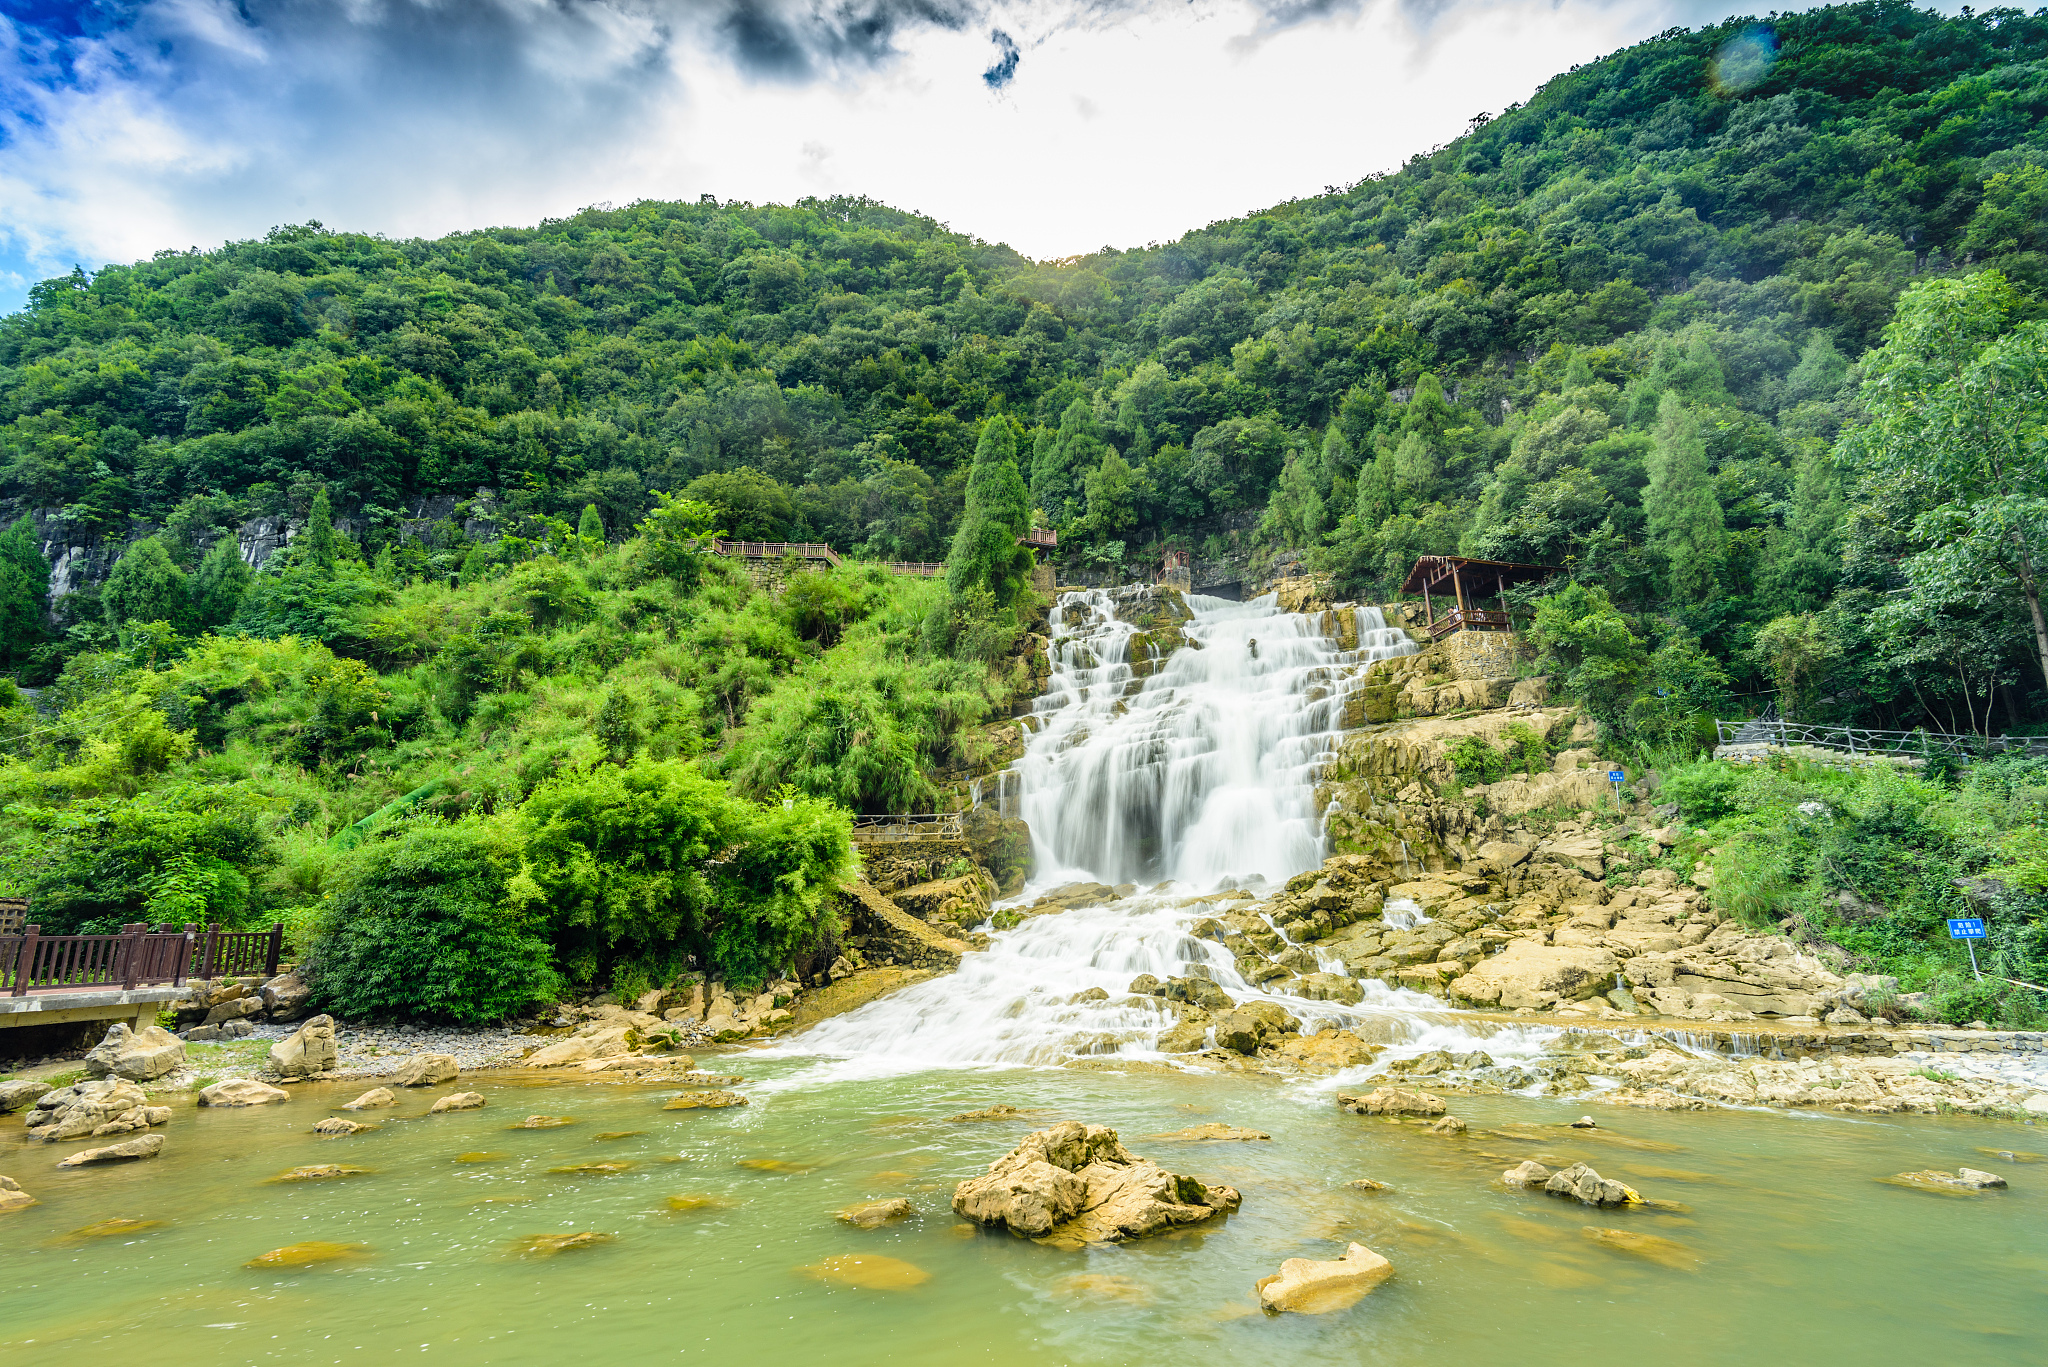 Shenquan Valley Leisure Tourism Resort